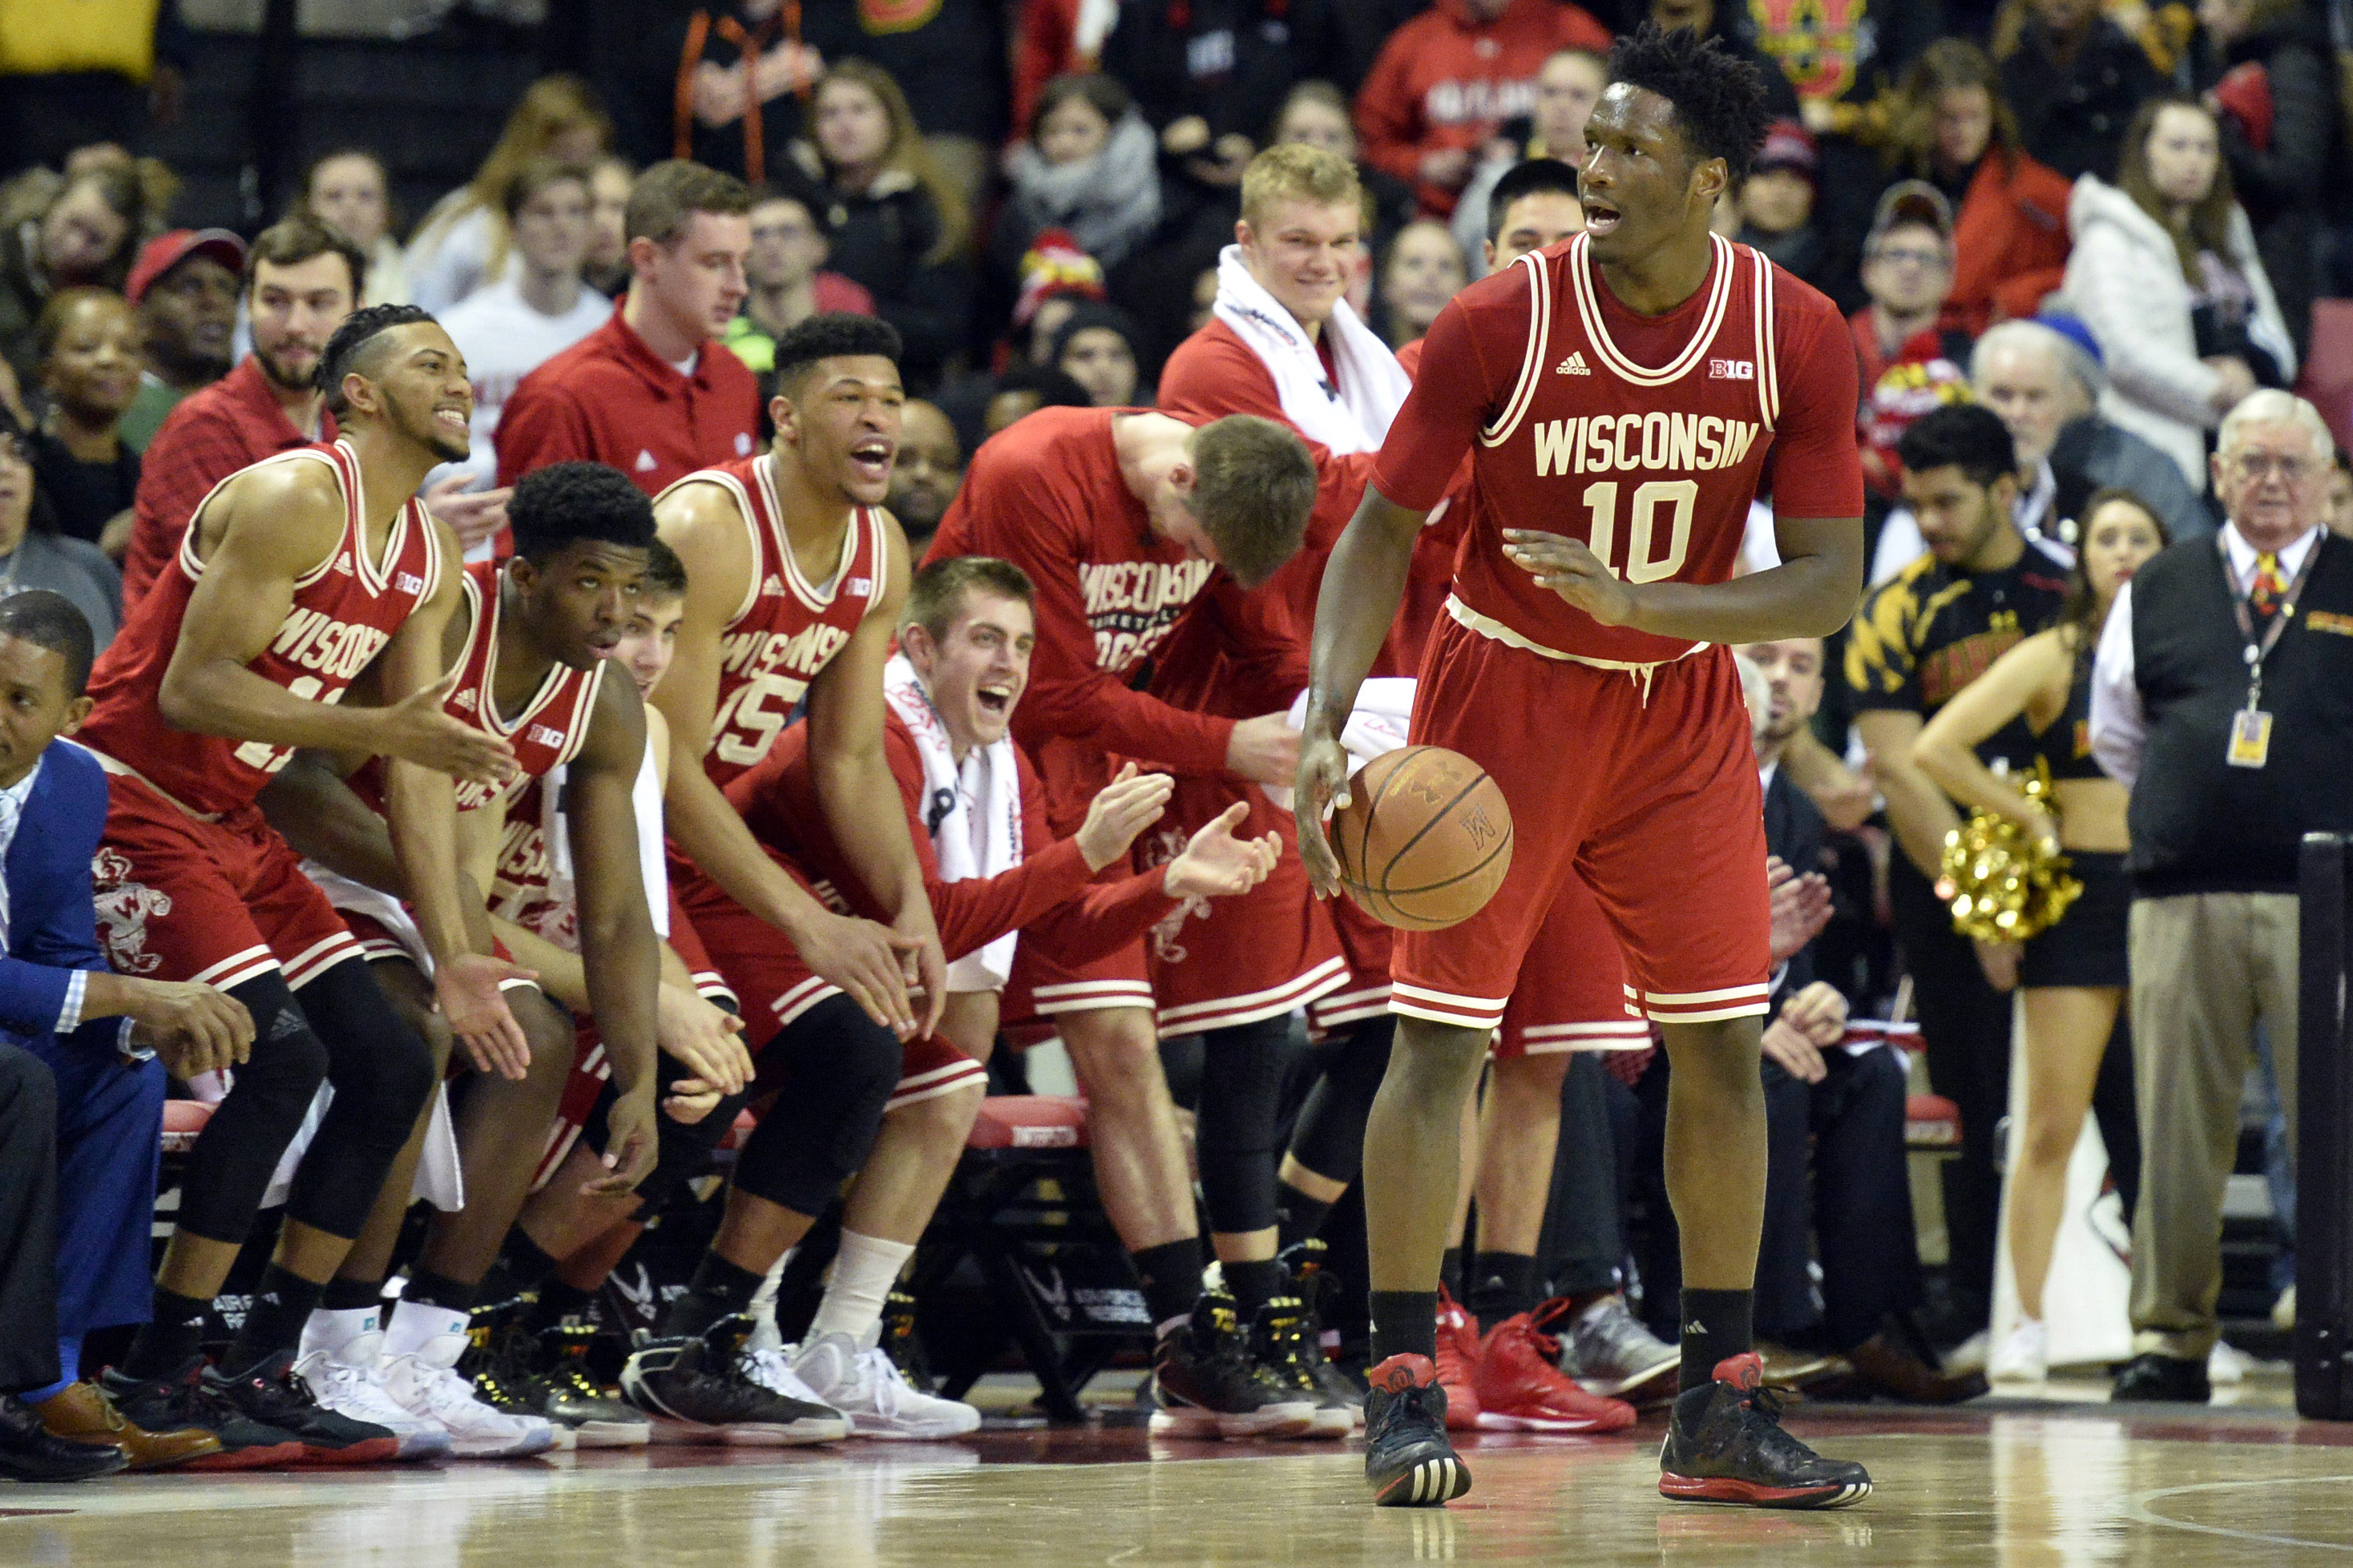 Resurgent Wisconsin looks to make it two B1G scalps in a row on Thursday night.